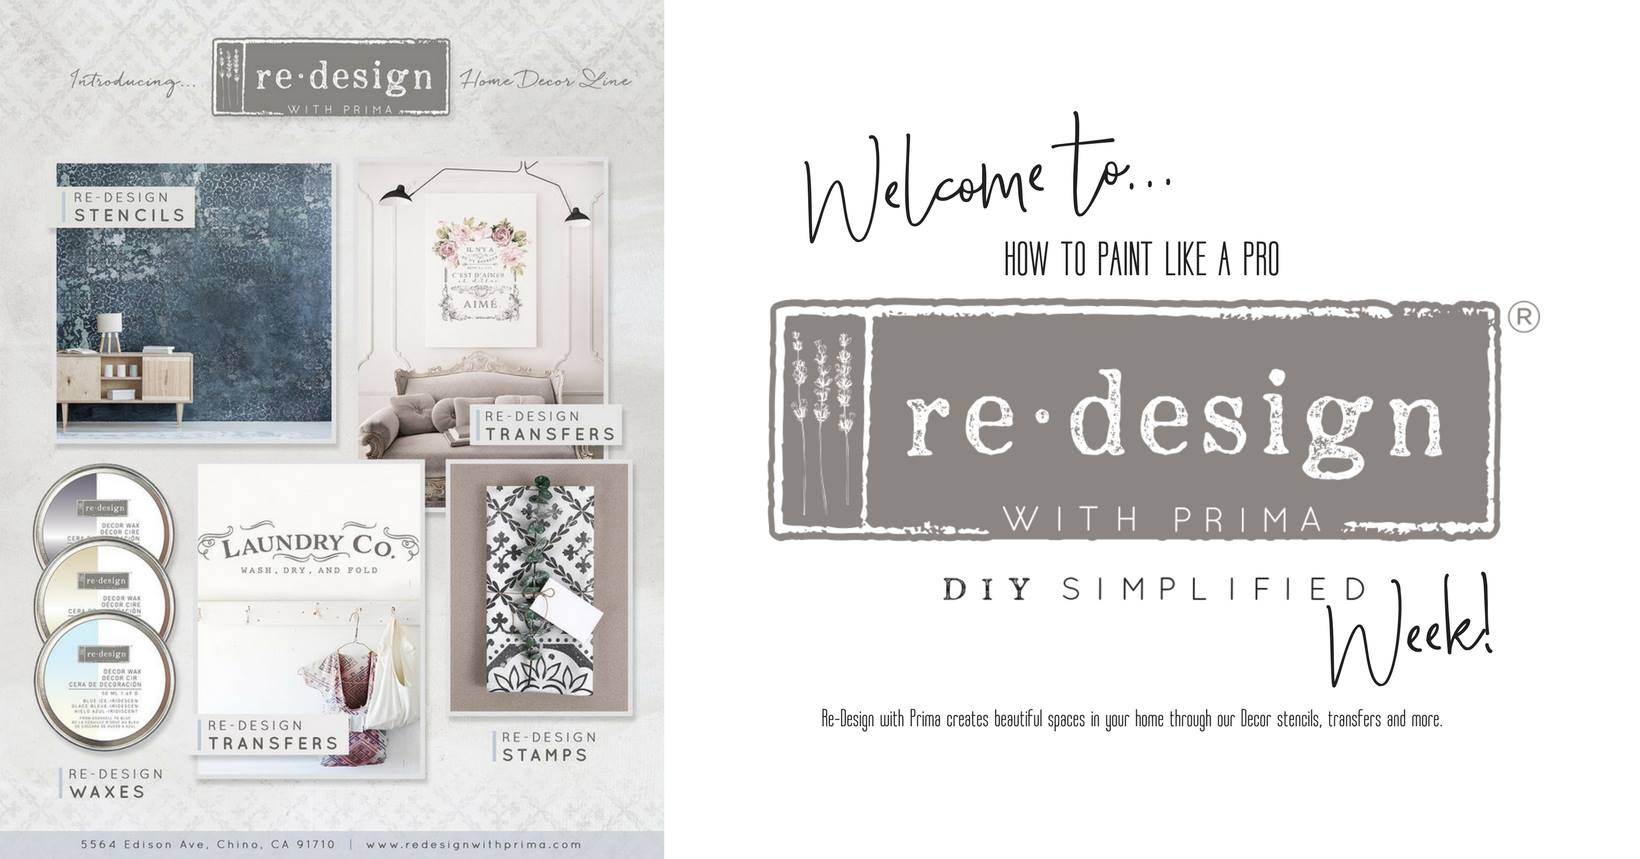 Hello [re]designers!  This Week is  [re]design with prima week on  How to Paint like a Pro Facebook Group!  Here is what you need to know!  1. There will be daily giveaways - you need to keep hopping into the group to find out what, how and when!* 2. On Saturday we will give away a GRAND PRIZE. To enter you will have to keep your eye on my daily posts. There will be a clue every day and you will need them all to be eligible to win! 3. All the links of where to buy etc. are below! 4. We LOVE Retailers - if you are a retailer show us your creations! 5. If you would like to become a ReDesign Retailer the link to apply is below!  _____________________________  ABOUT ReDesign with Prima Home Decor  OUR PRODUCTS, YOUR PASSION  Prima Marketing Inc. is an established leader in home decor, mixed media arts and paper crafting products. Prima is home to Re-Design, a new and fresh way to decorate your living space through wall transfers, moulds and decor stamps. We hope our products spark your imagination as you use them in your everyday up-cycling, home decor and alterations.  Where to Find a Retailer:  https://www.redesignwithprima.com/where-to-buy/   [re]design website:  https://www.redesignwithprima.com/  ___________________________  You can see the entire line of stunning products here - with the MOST BEAUTIFUL inspirational images! Get DIYing Pros!   https://www.redesignwithprima.com/catalog/   ___________________________  Would you love to BECOME A RETAILER? Or do you know a store that should become a retailer? Check out this link!  Retailer Account Sign Ups:  https://www.primamarketinginc.com/sign-up   __________________________  Need inspiration? Find plenty here on the Blog: [re]design blog:  https://www.redesignwithprima.com/blog/   ___________________________  CHECK OUT THE INSTAGRAM FEED HERE FOR LOTS OF INSPIRATION!   https://www.instagram.com/redesignwithprima/   _____________________________________  *A note about the [re]design giveaways this week. Giveaways ar